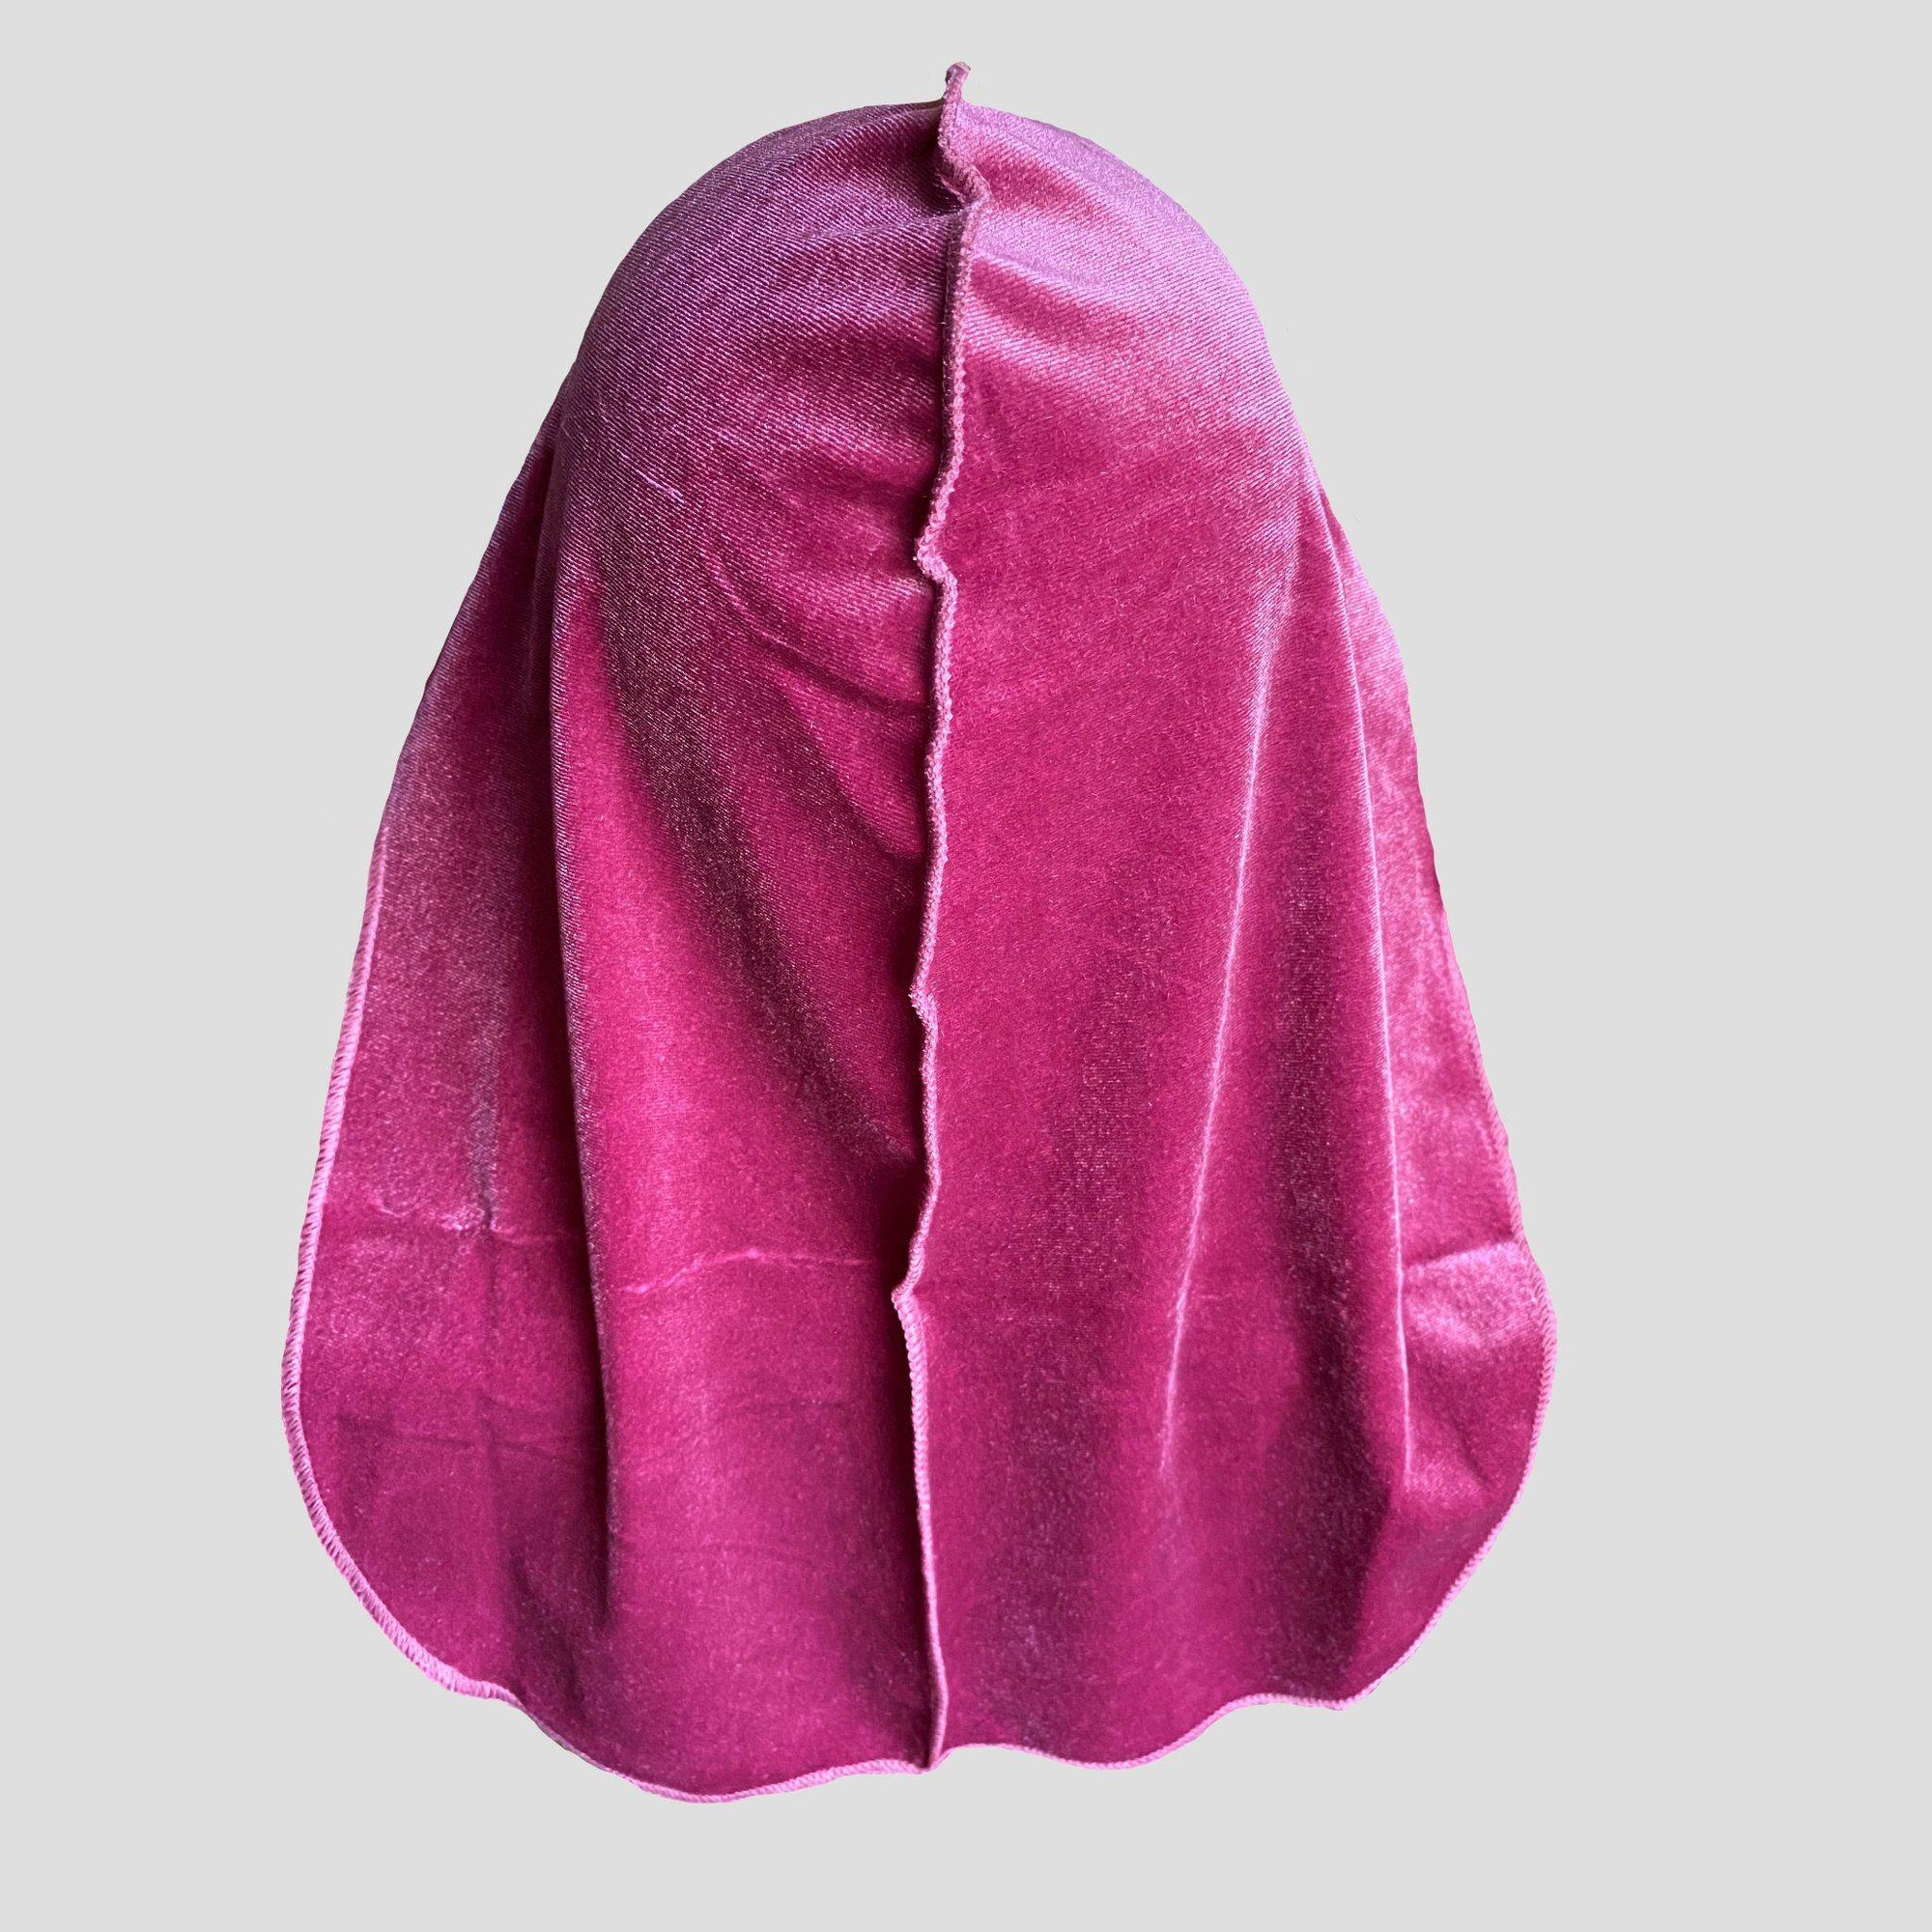 Premium Grape Velvet Durag - Durag Wave